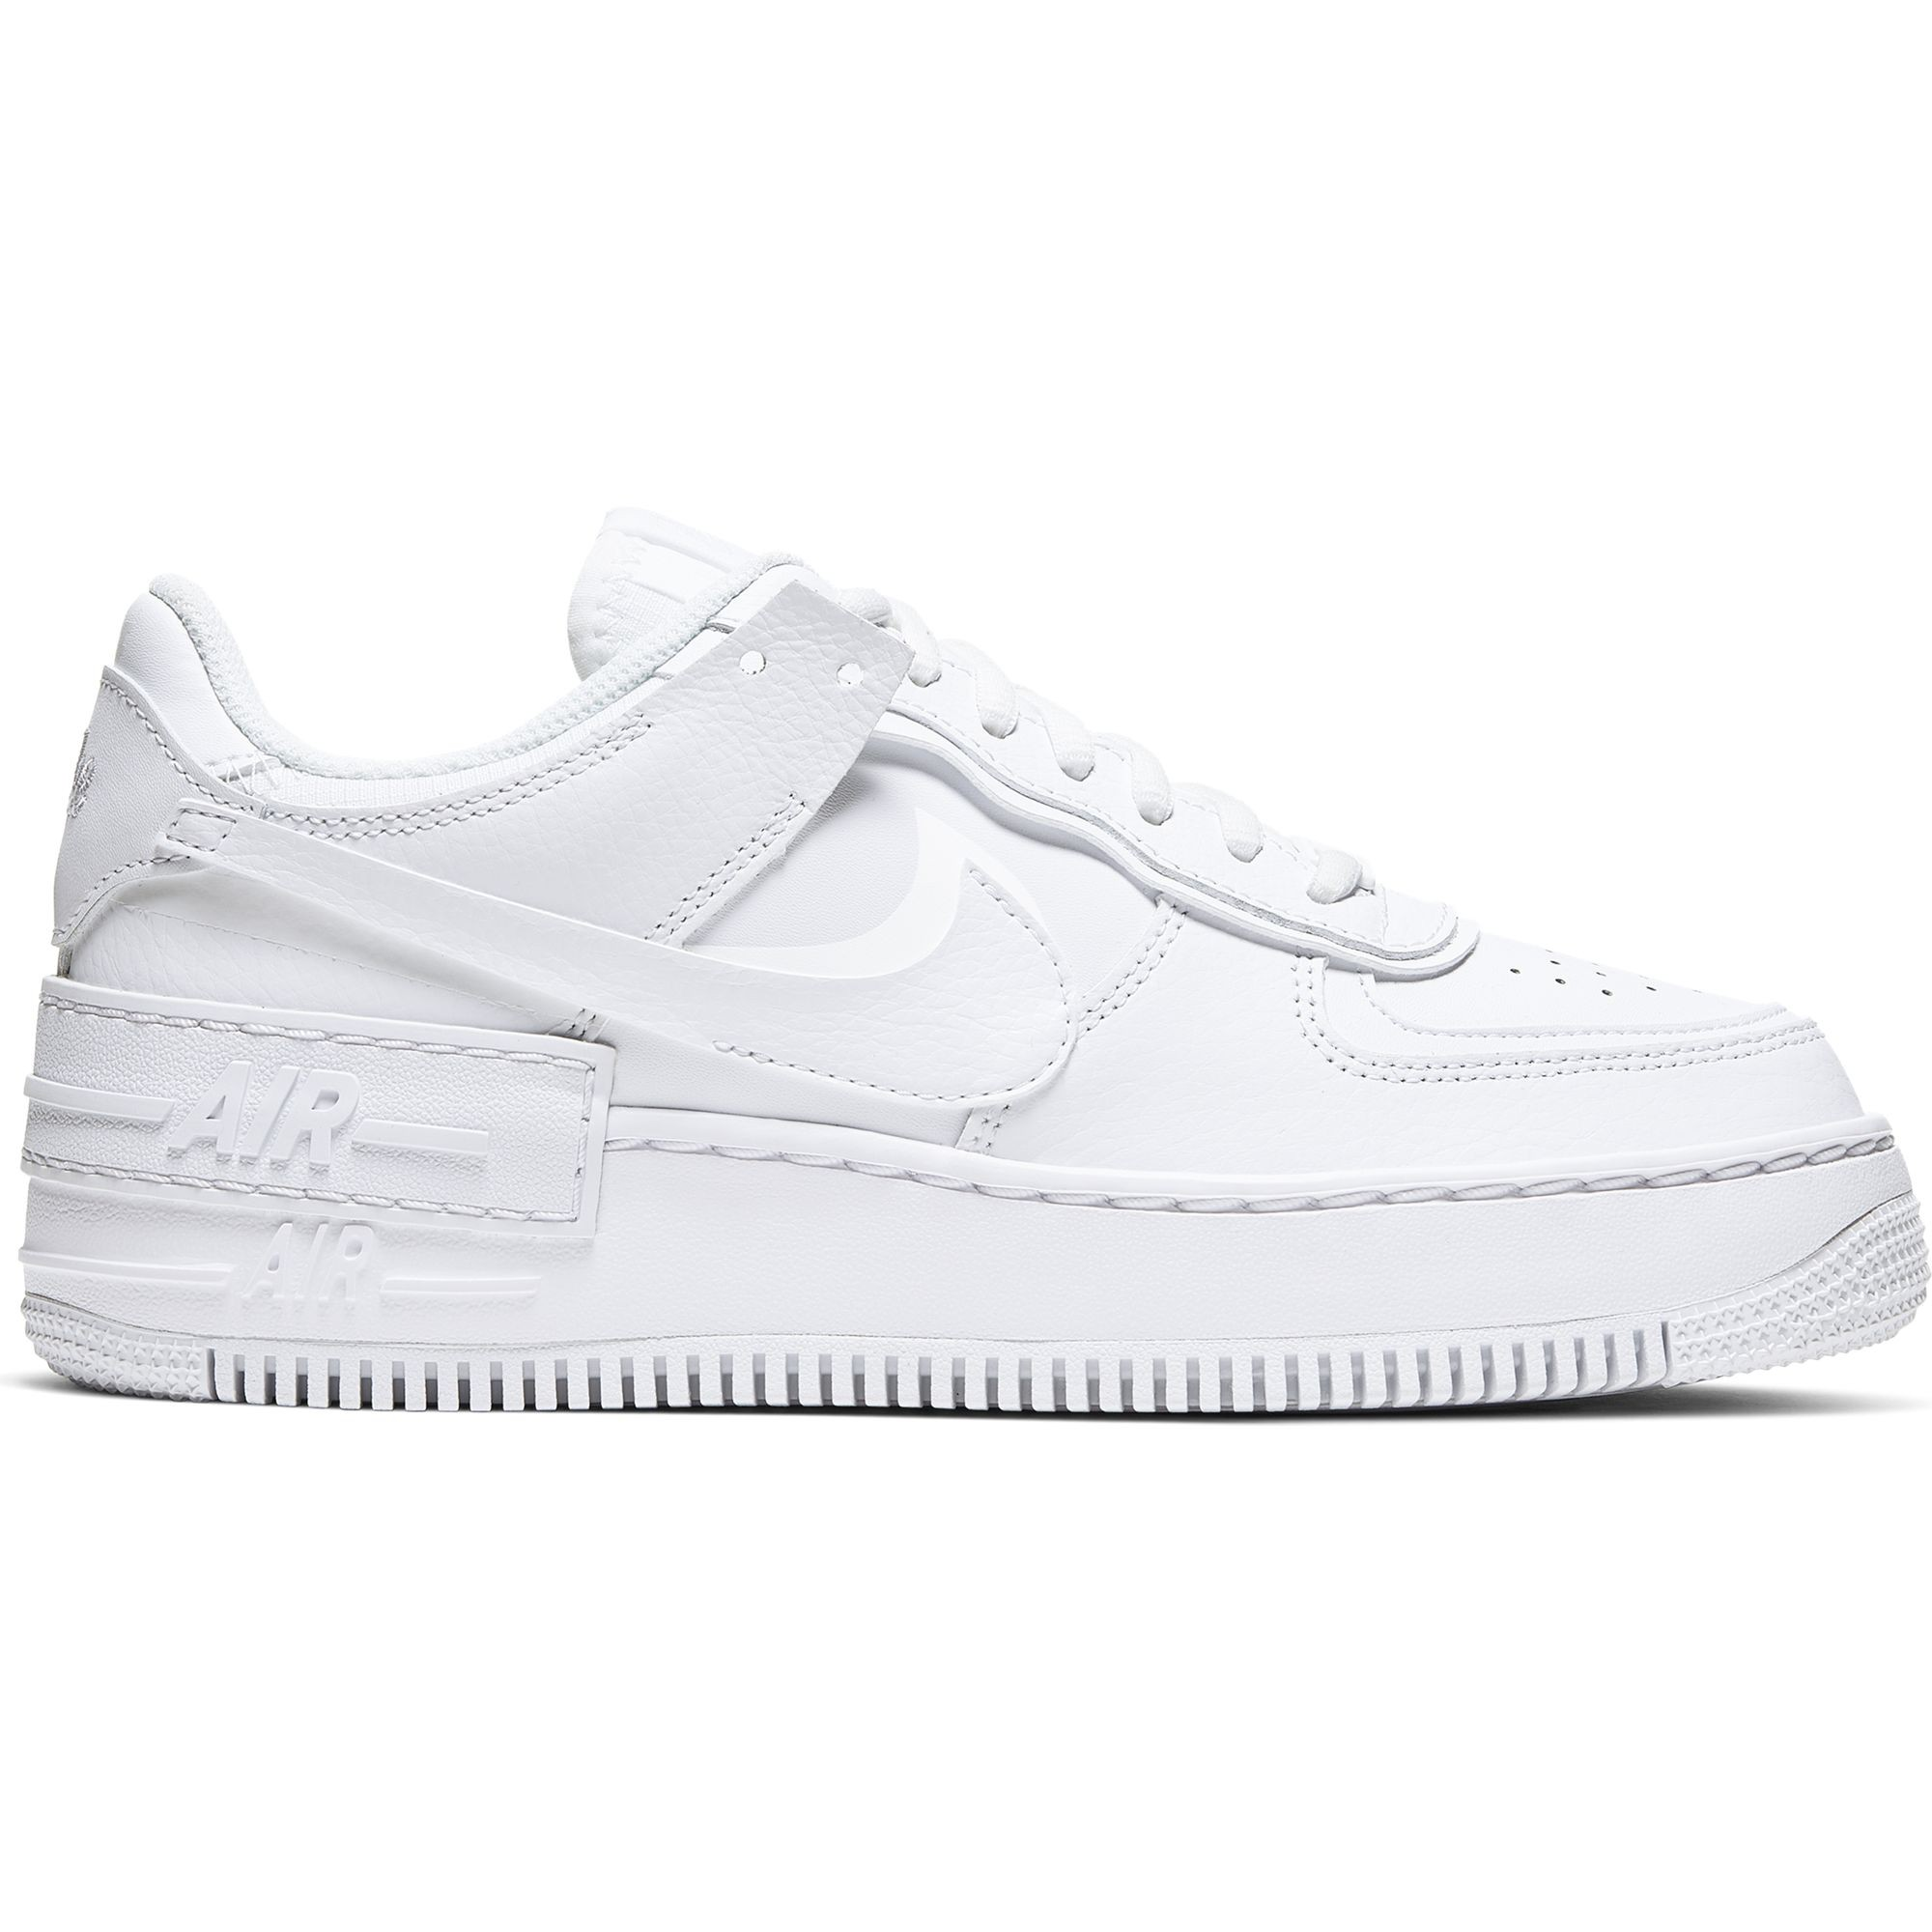 Soldes > air force one shadow blanches > en stock